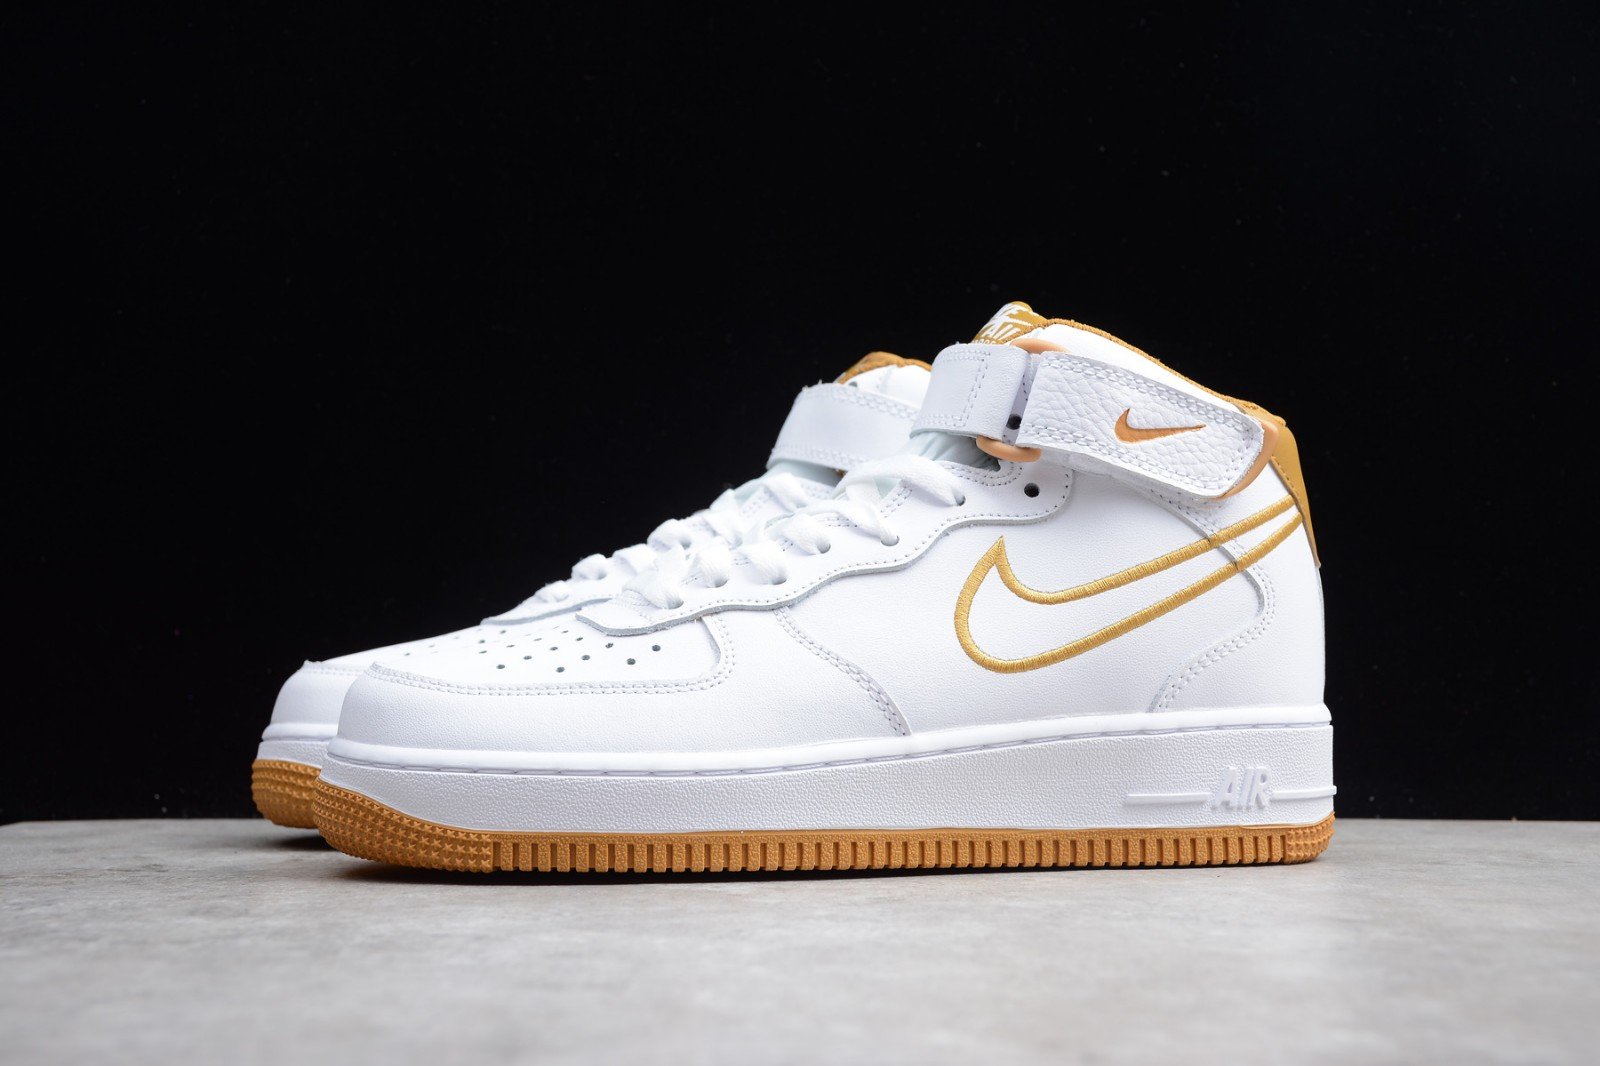 White Air Mid Leather 101 Force 1 Nike Muted Aq8650 Shoes Bronze 1JulT5K3Fc